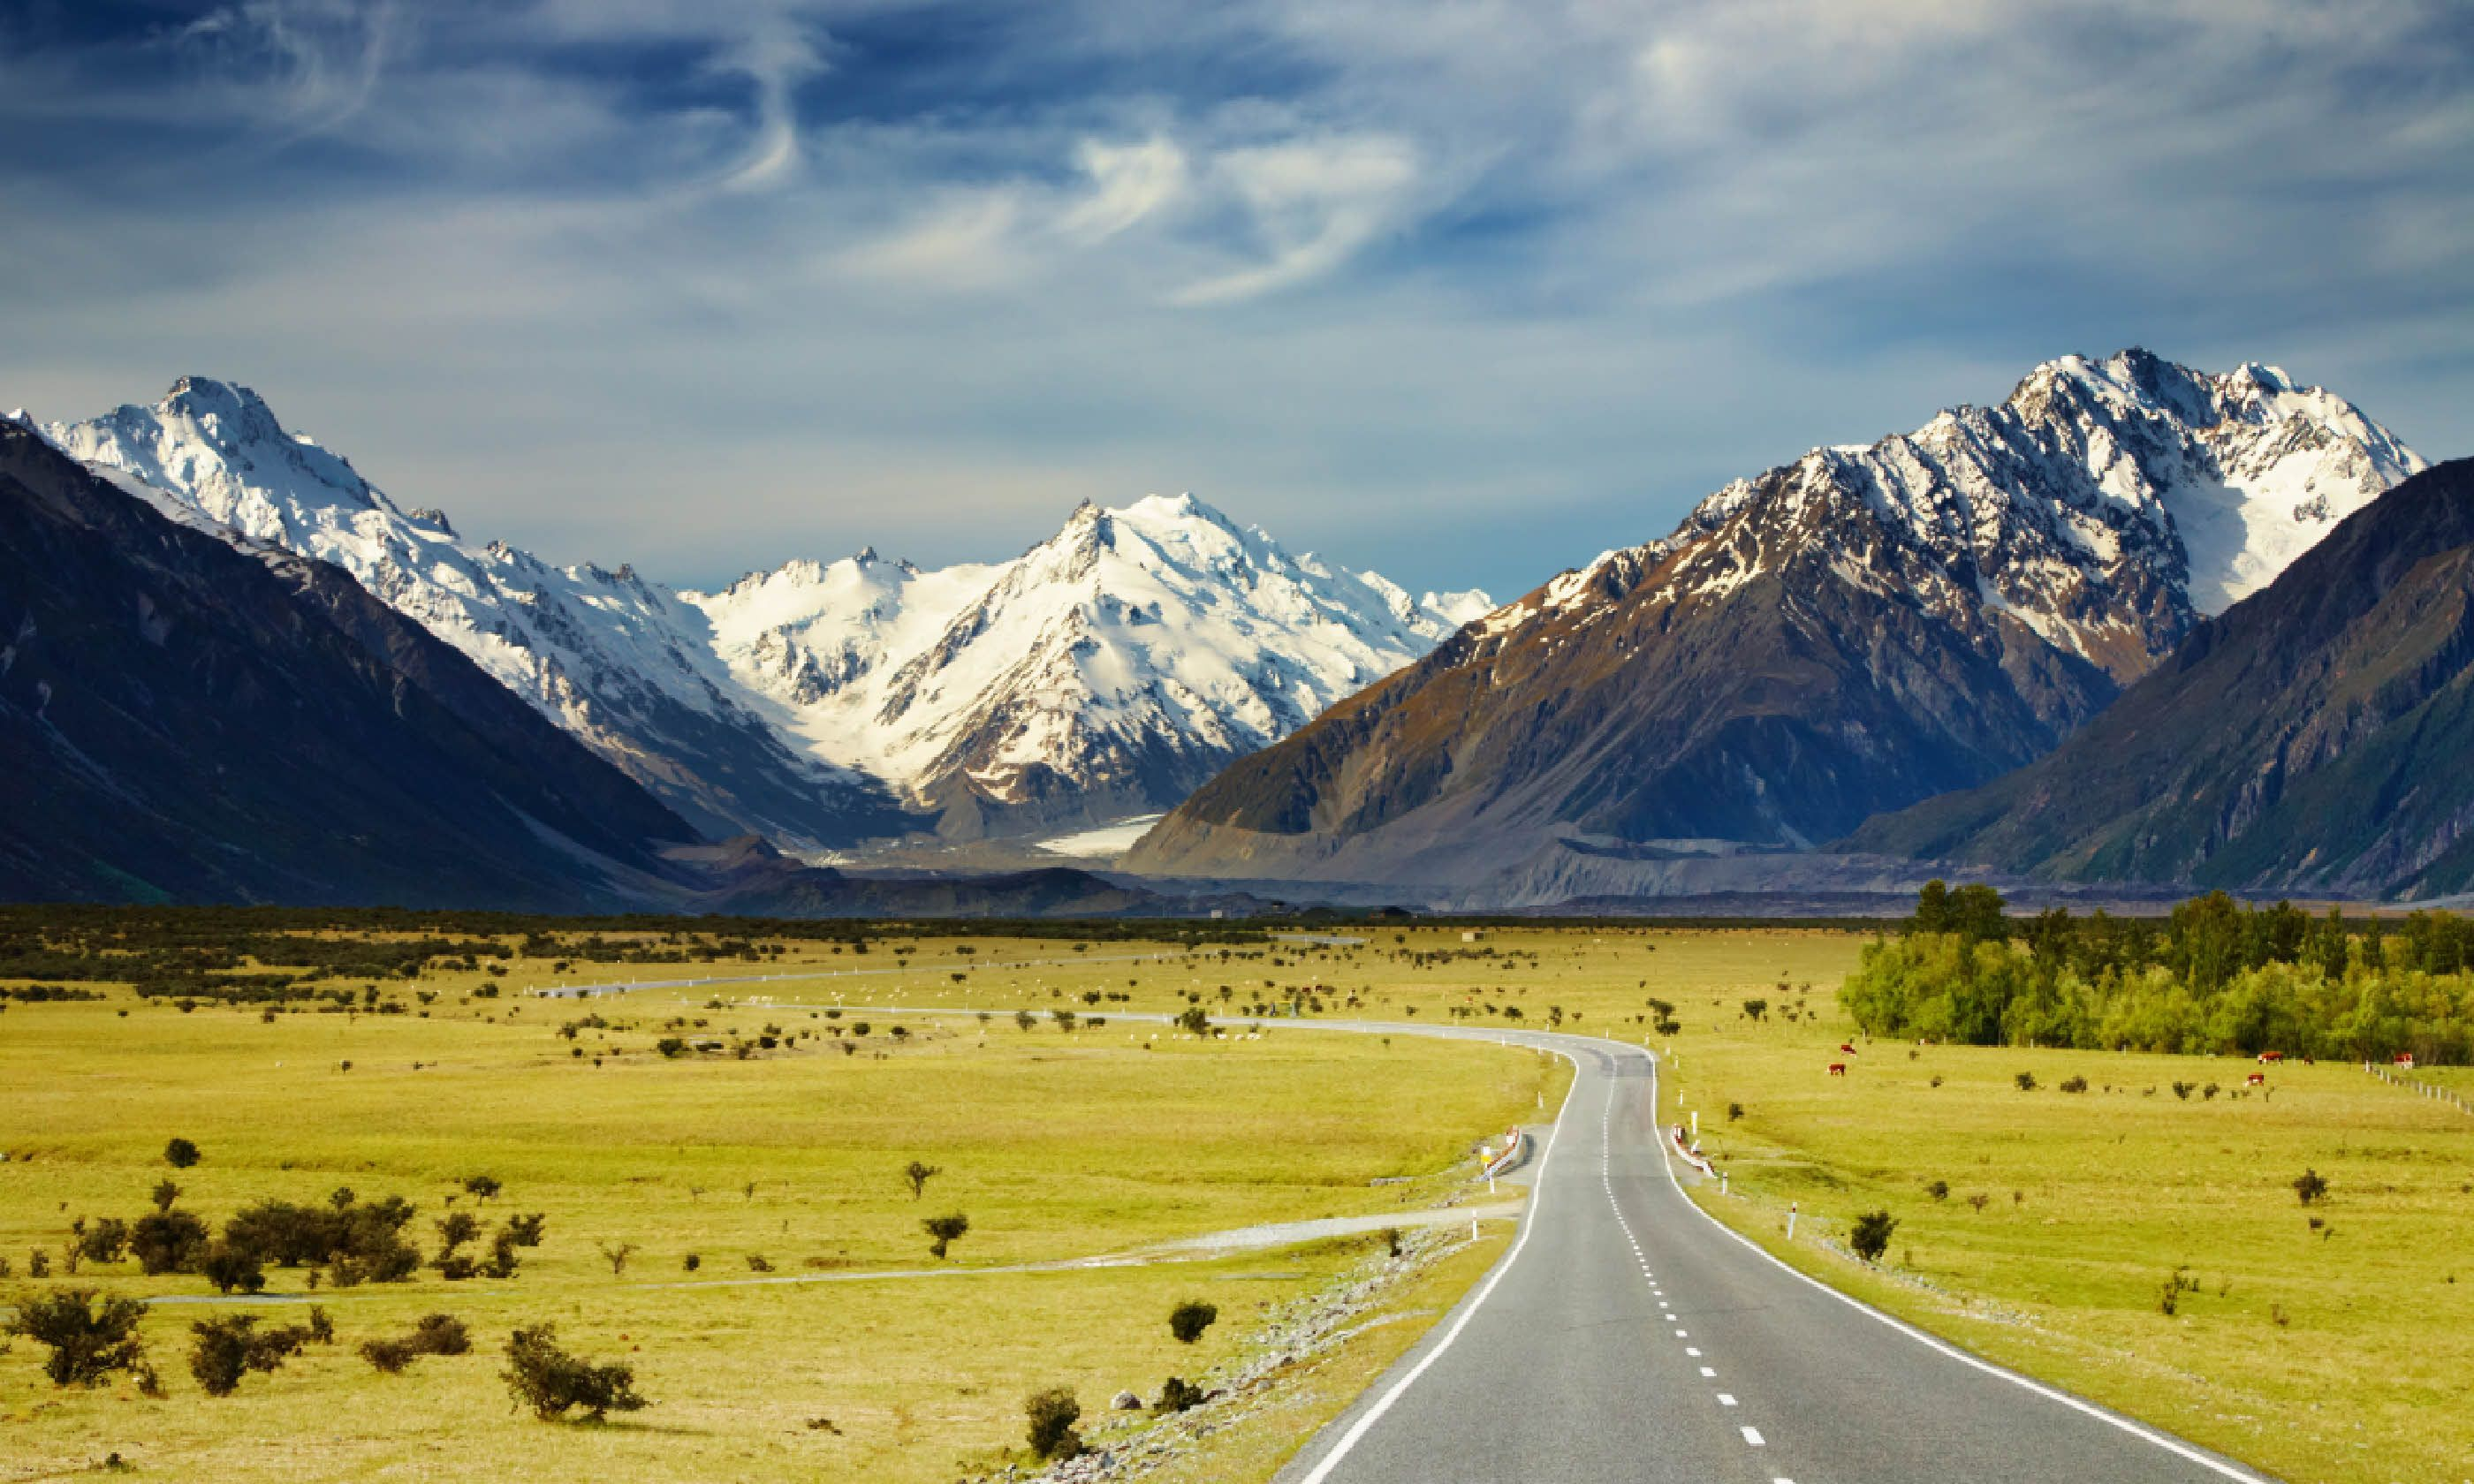 Southern Alps, New Zealand (Shutterstock)